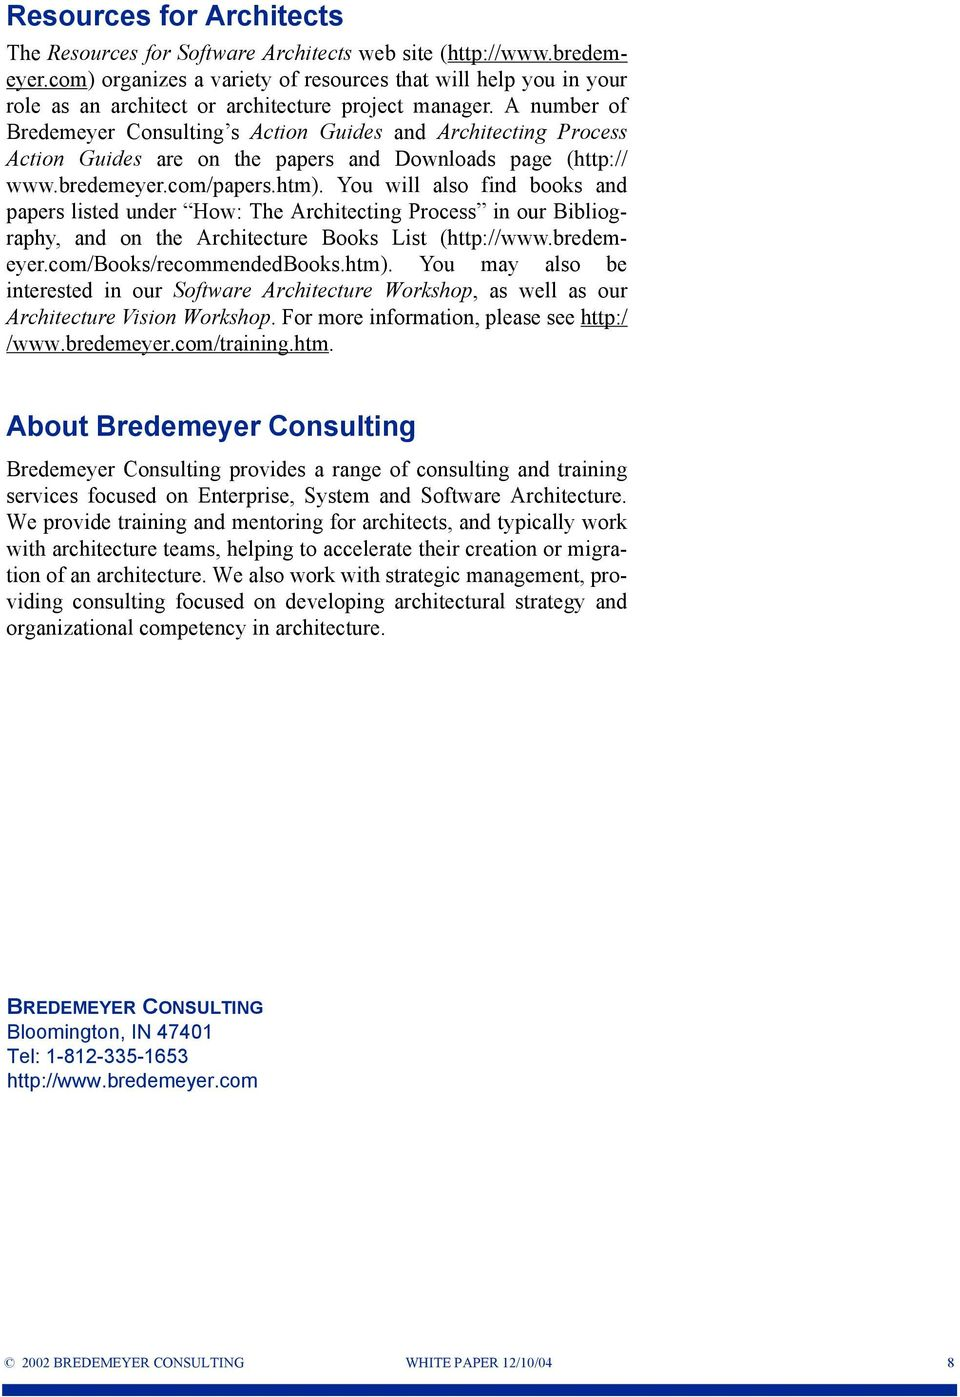 A number of Bredemeyer Consulting s Action Guides and Architecting Process Action Guides are on the papers and Downloads page (http:// www.bredemeyer.com/papers.htm).